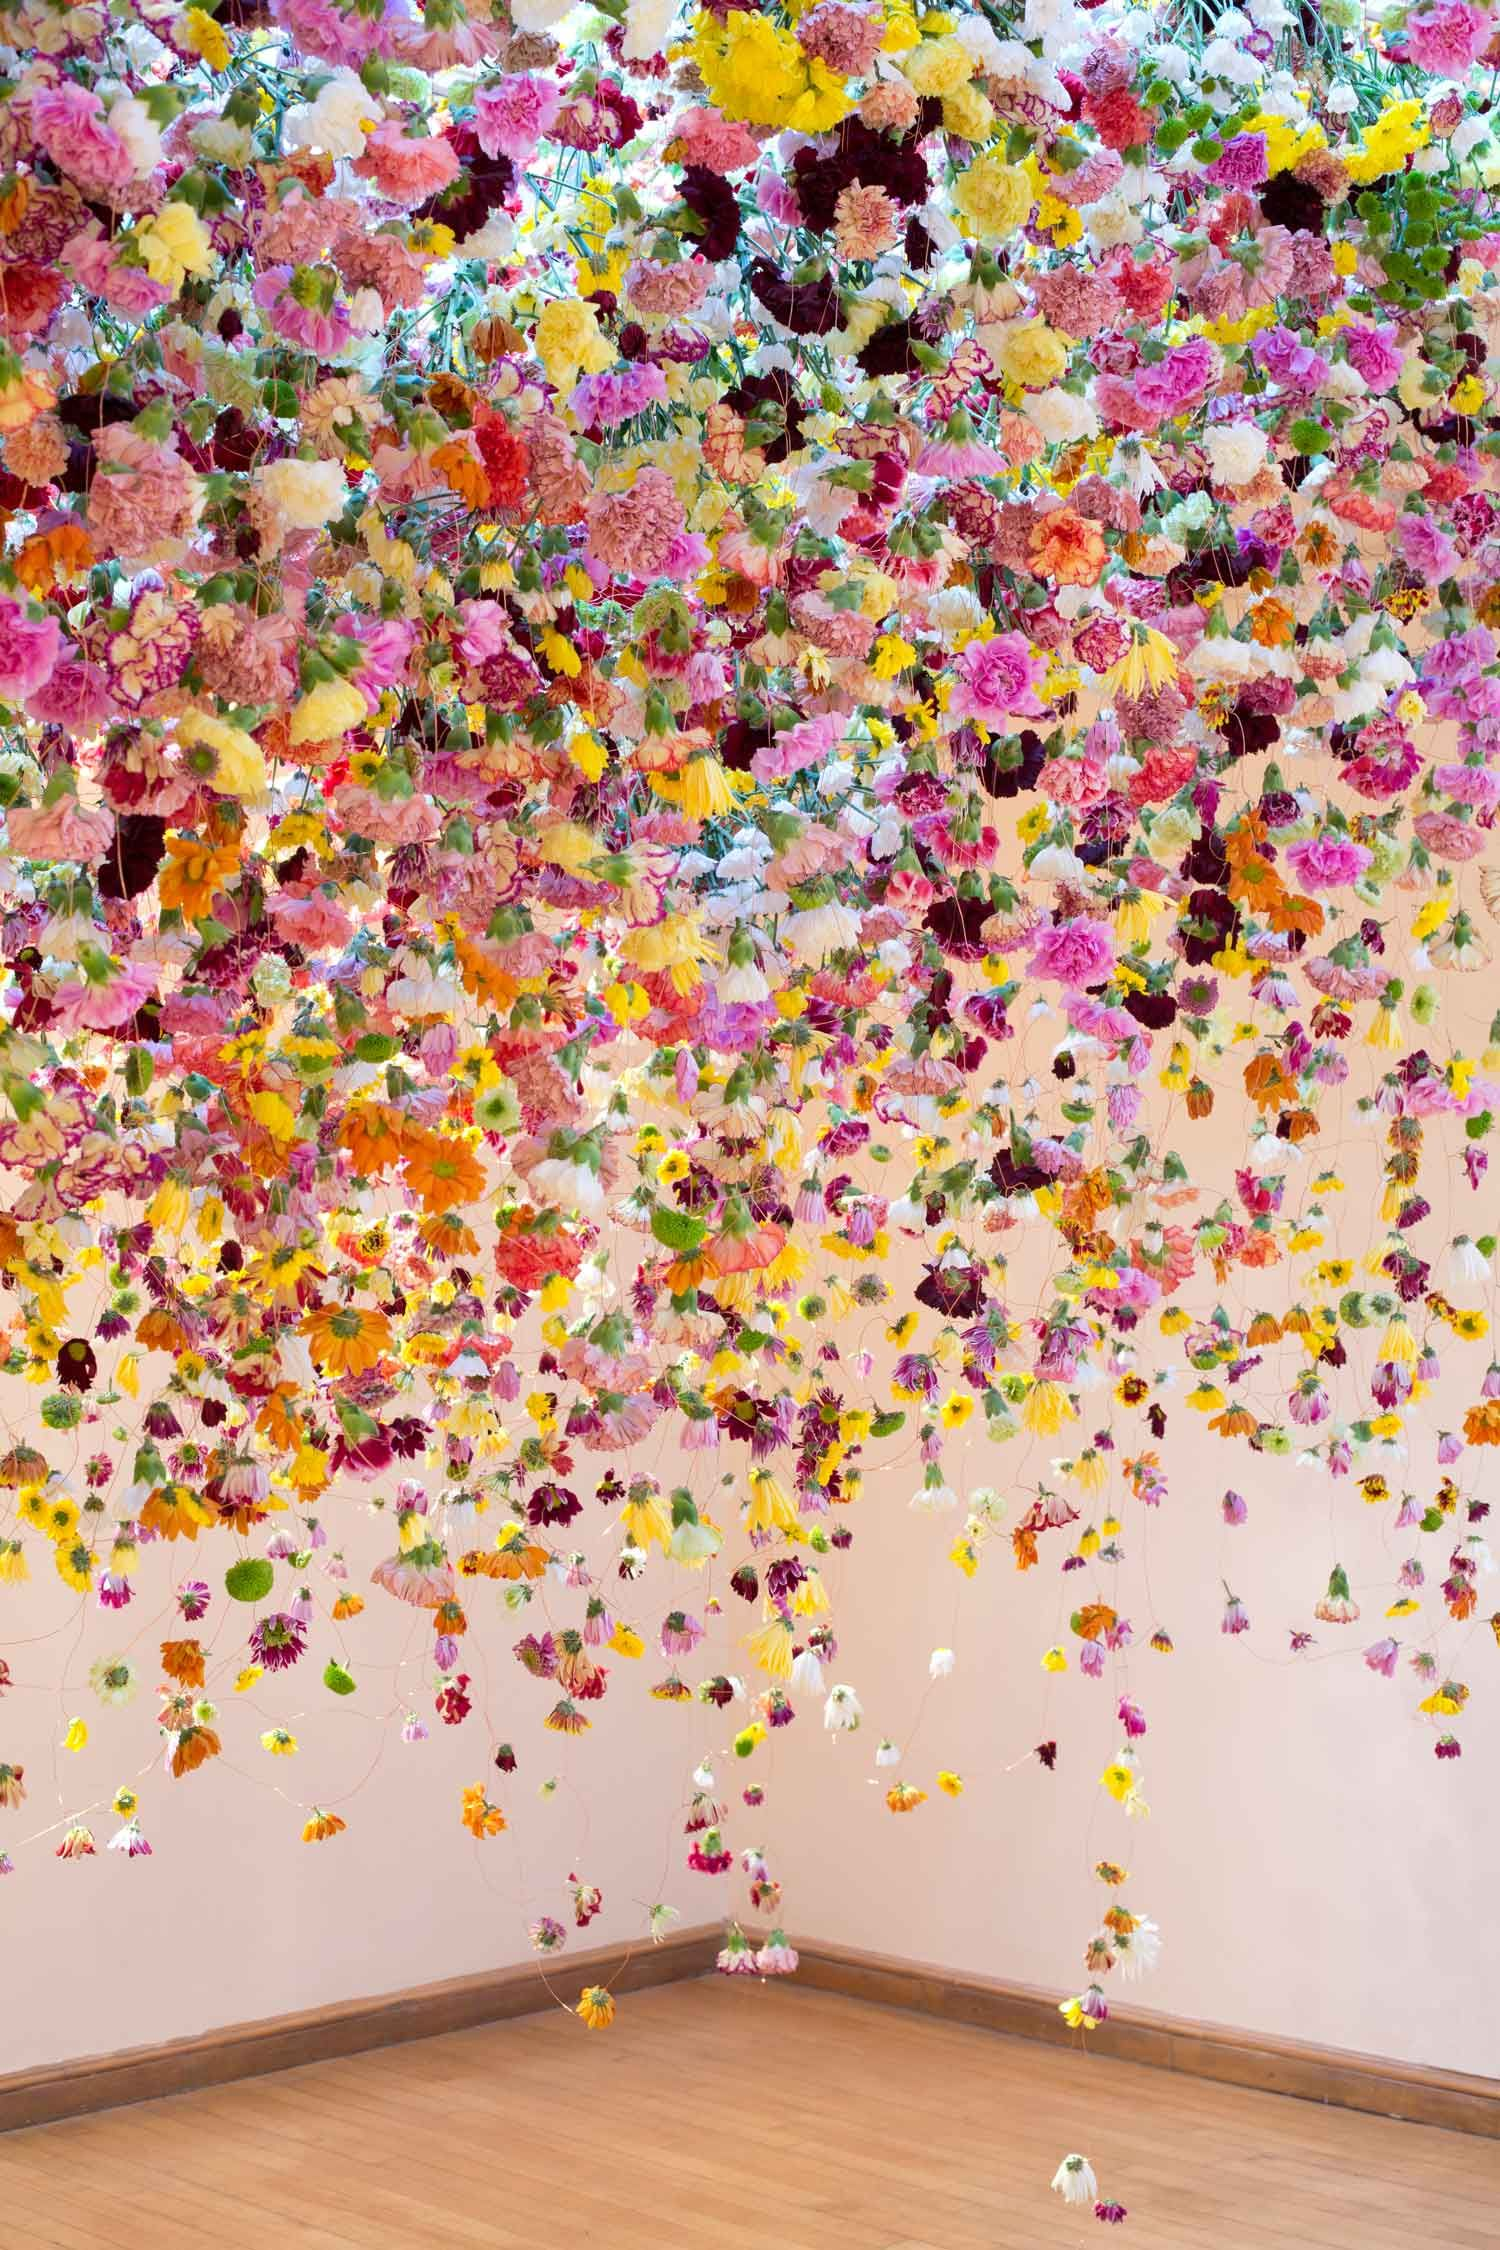 Current Obsessions: The Green Life. Installation by Rebecca Louise Law